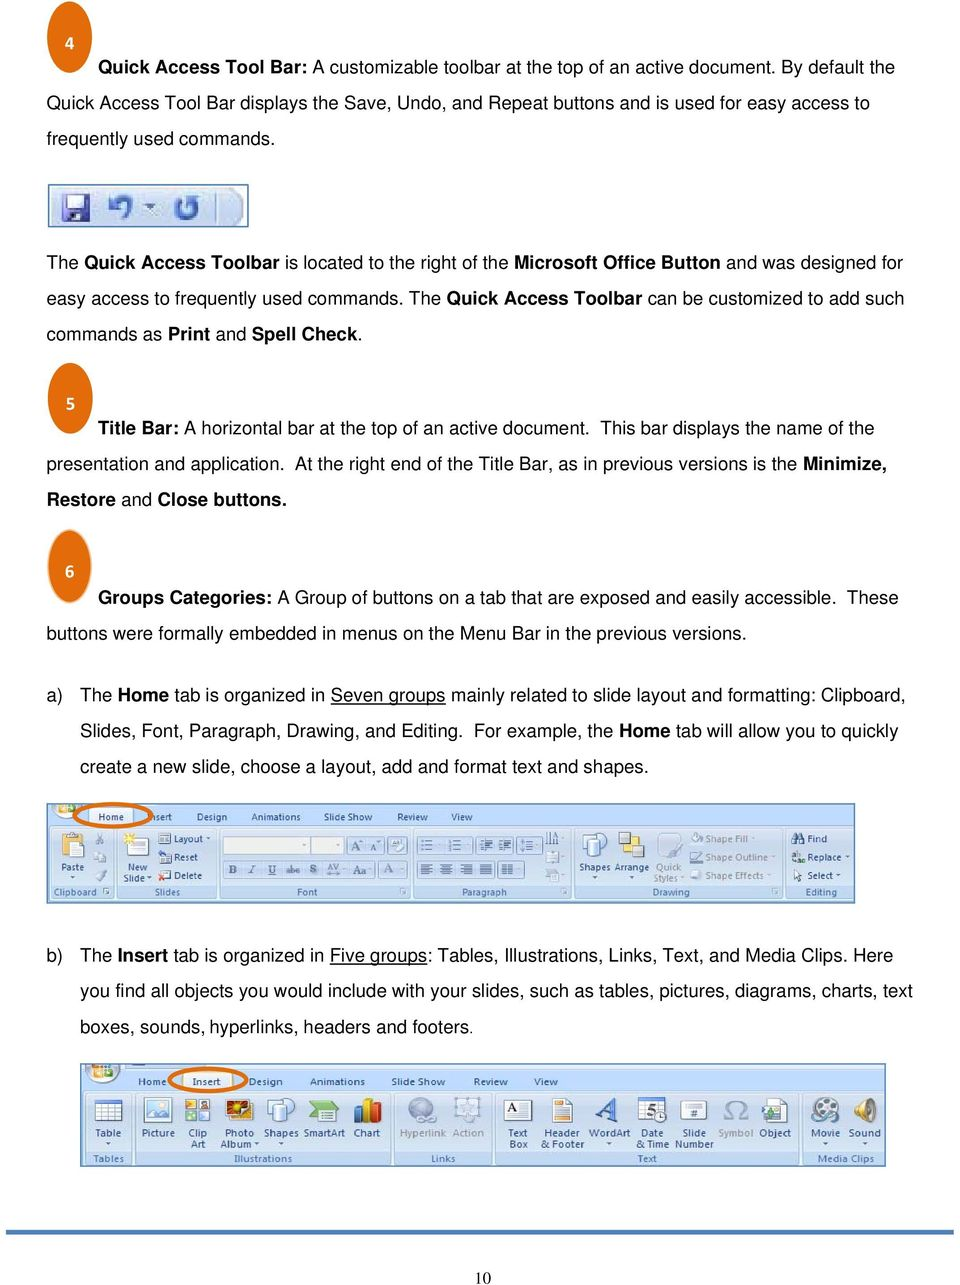 The Quick Access Toolbar is located to the right of the Microsoft Office Button and was designed for easy access to frequently used commands.